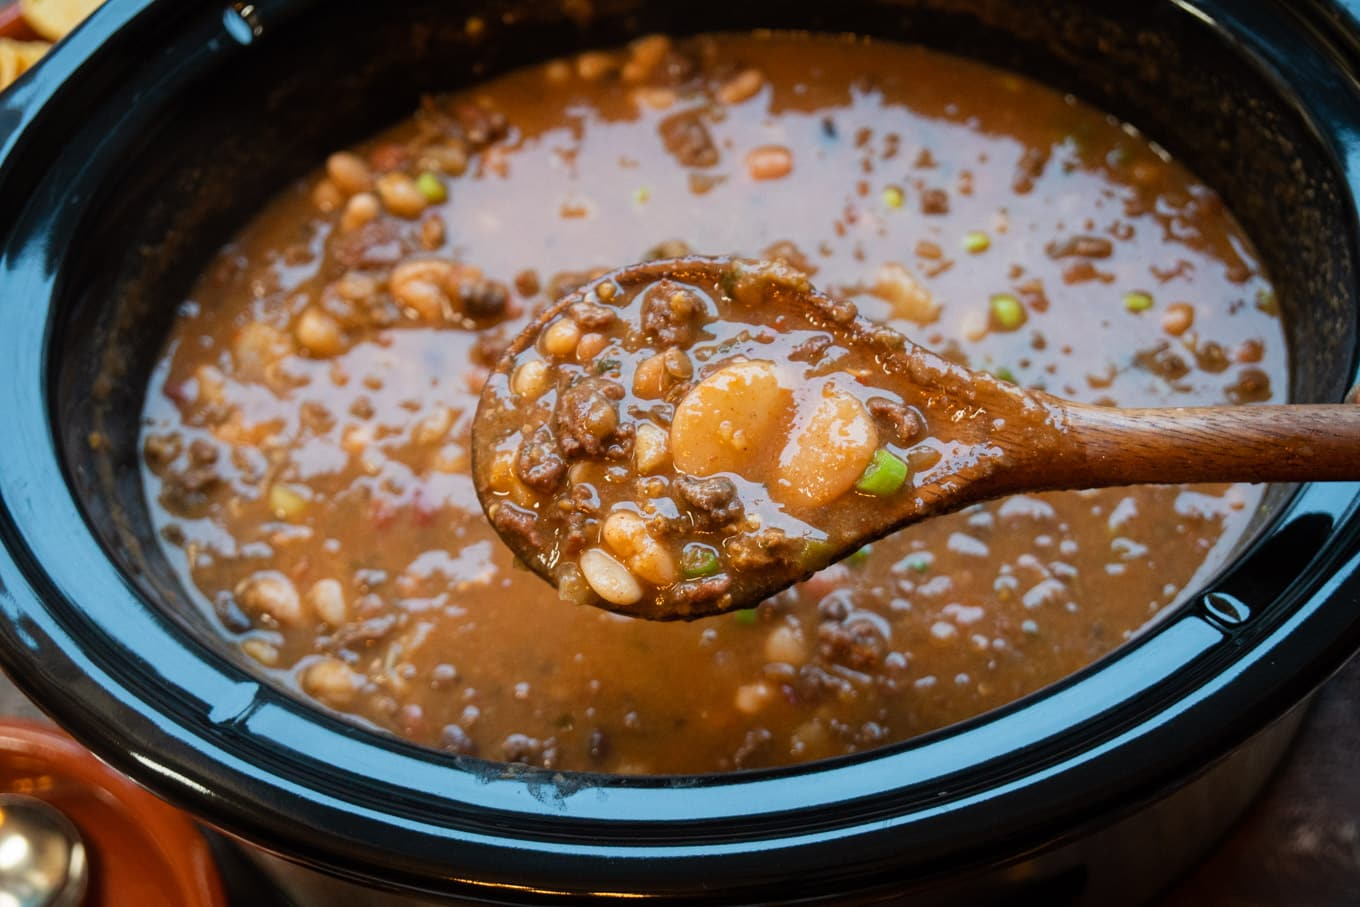 taco 15 bean soup in slow cooker with spoon scooping it out